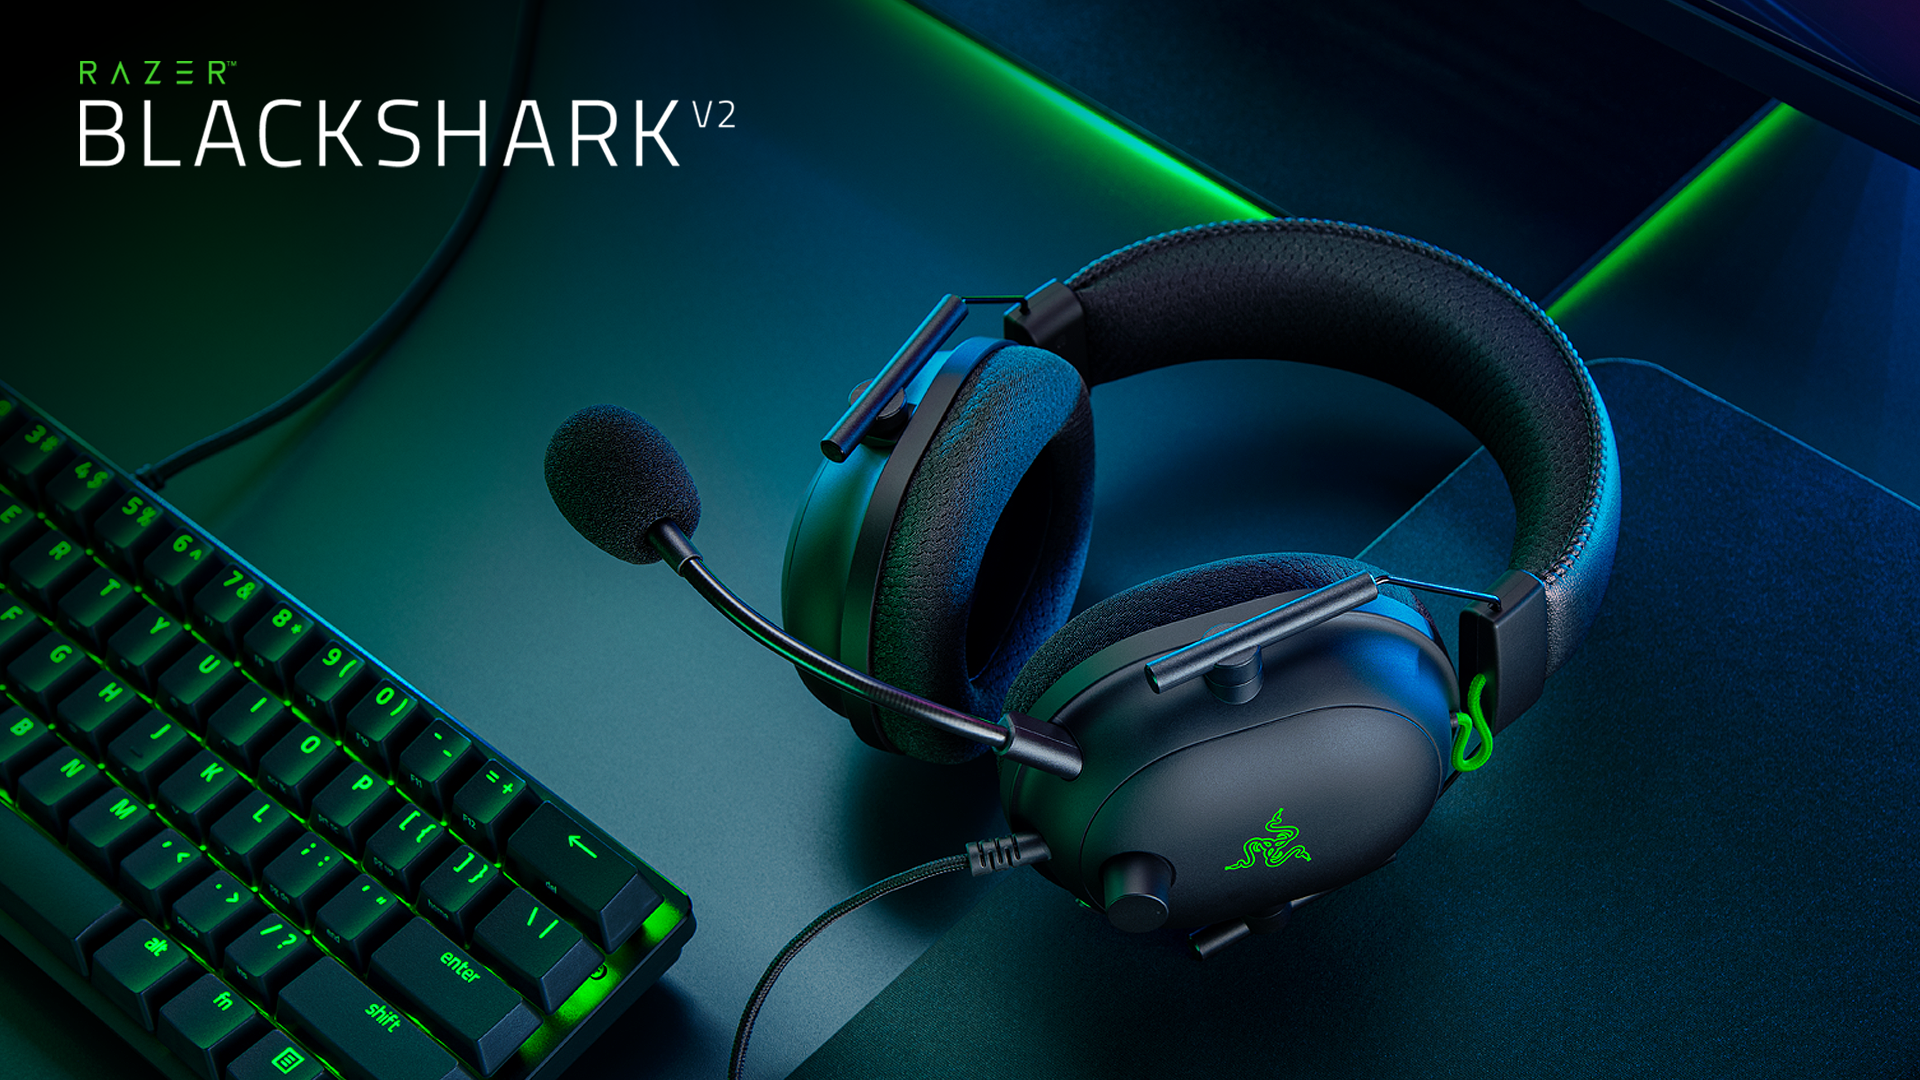 THE NEW TRIPLE THREAT IN ESPORTS – THE RAZER BLACKSHARK V2